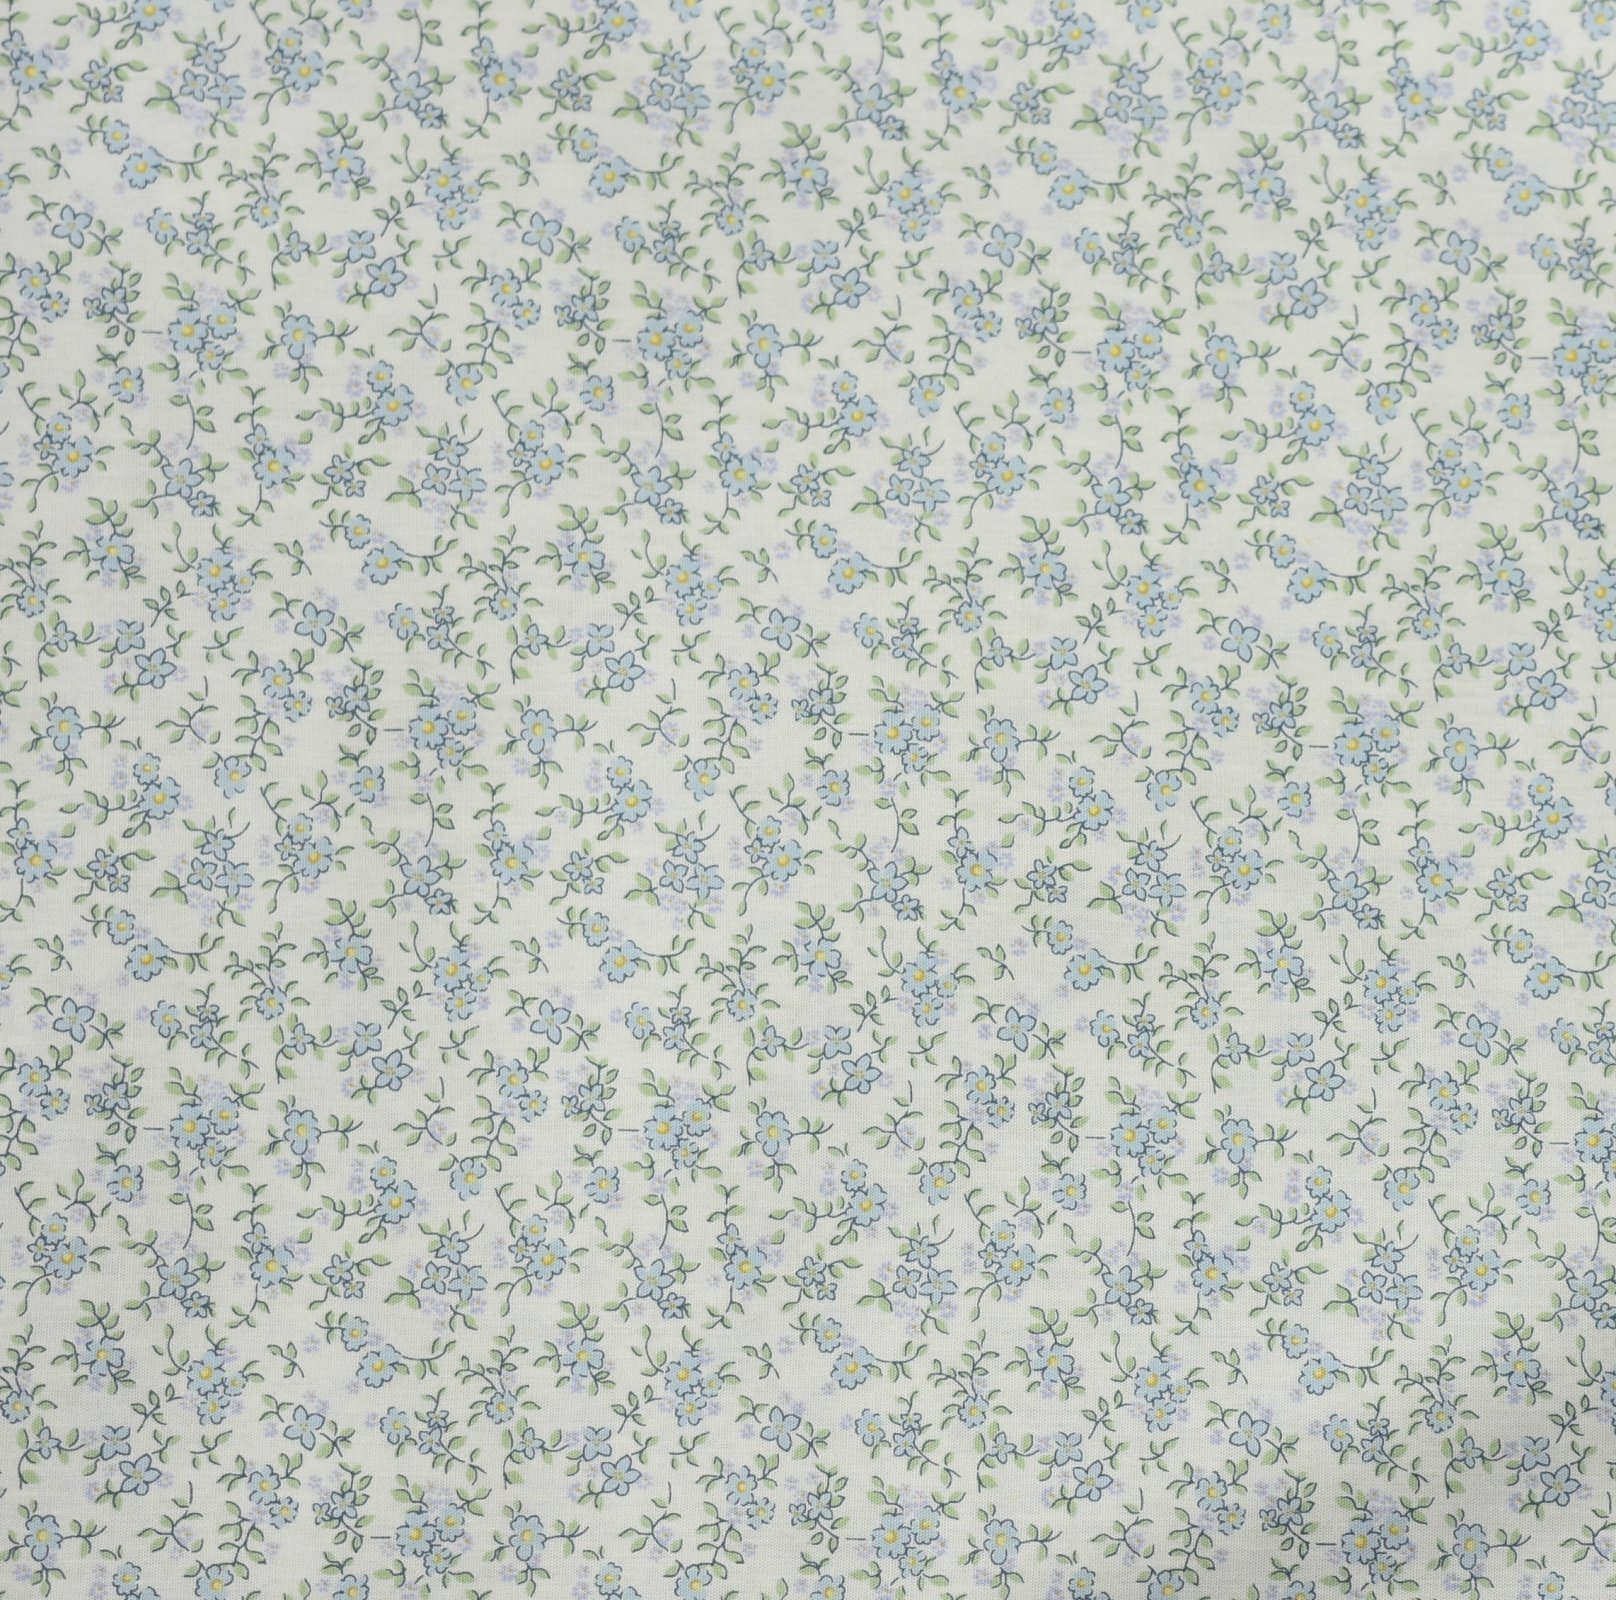 Handworks - Fiore Collection - Pretty Blue Floral